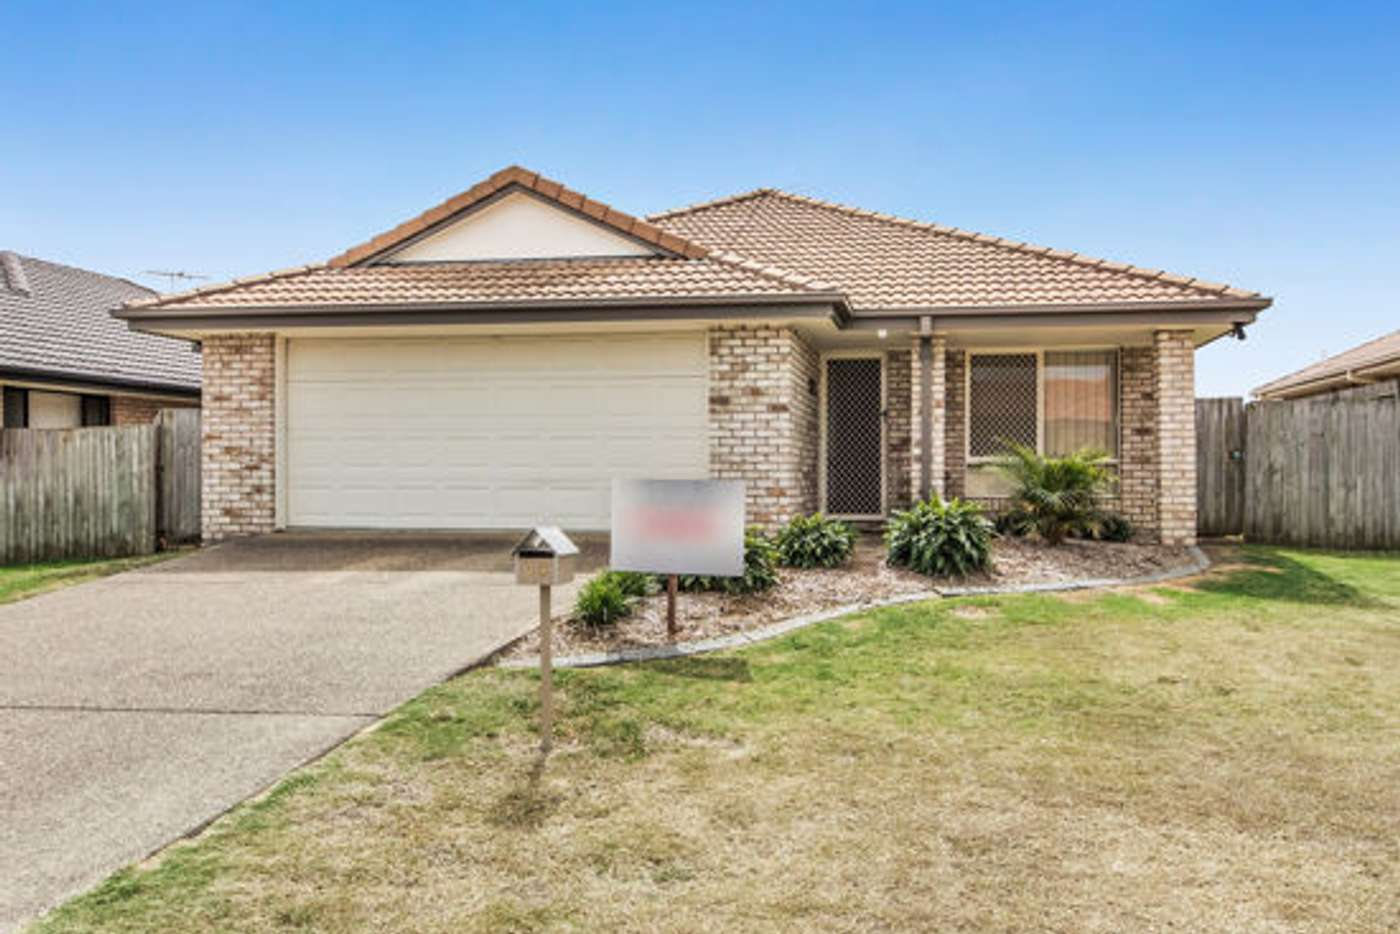 Main view of Homely house listing, 29 Katie Way, Raceview QLD 4305